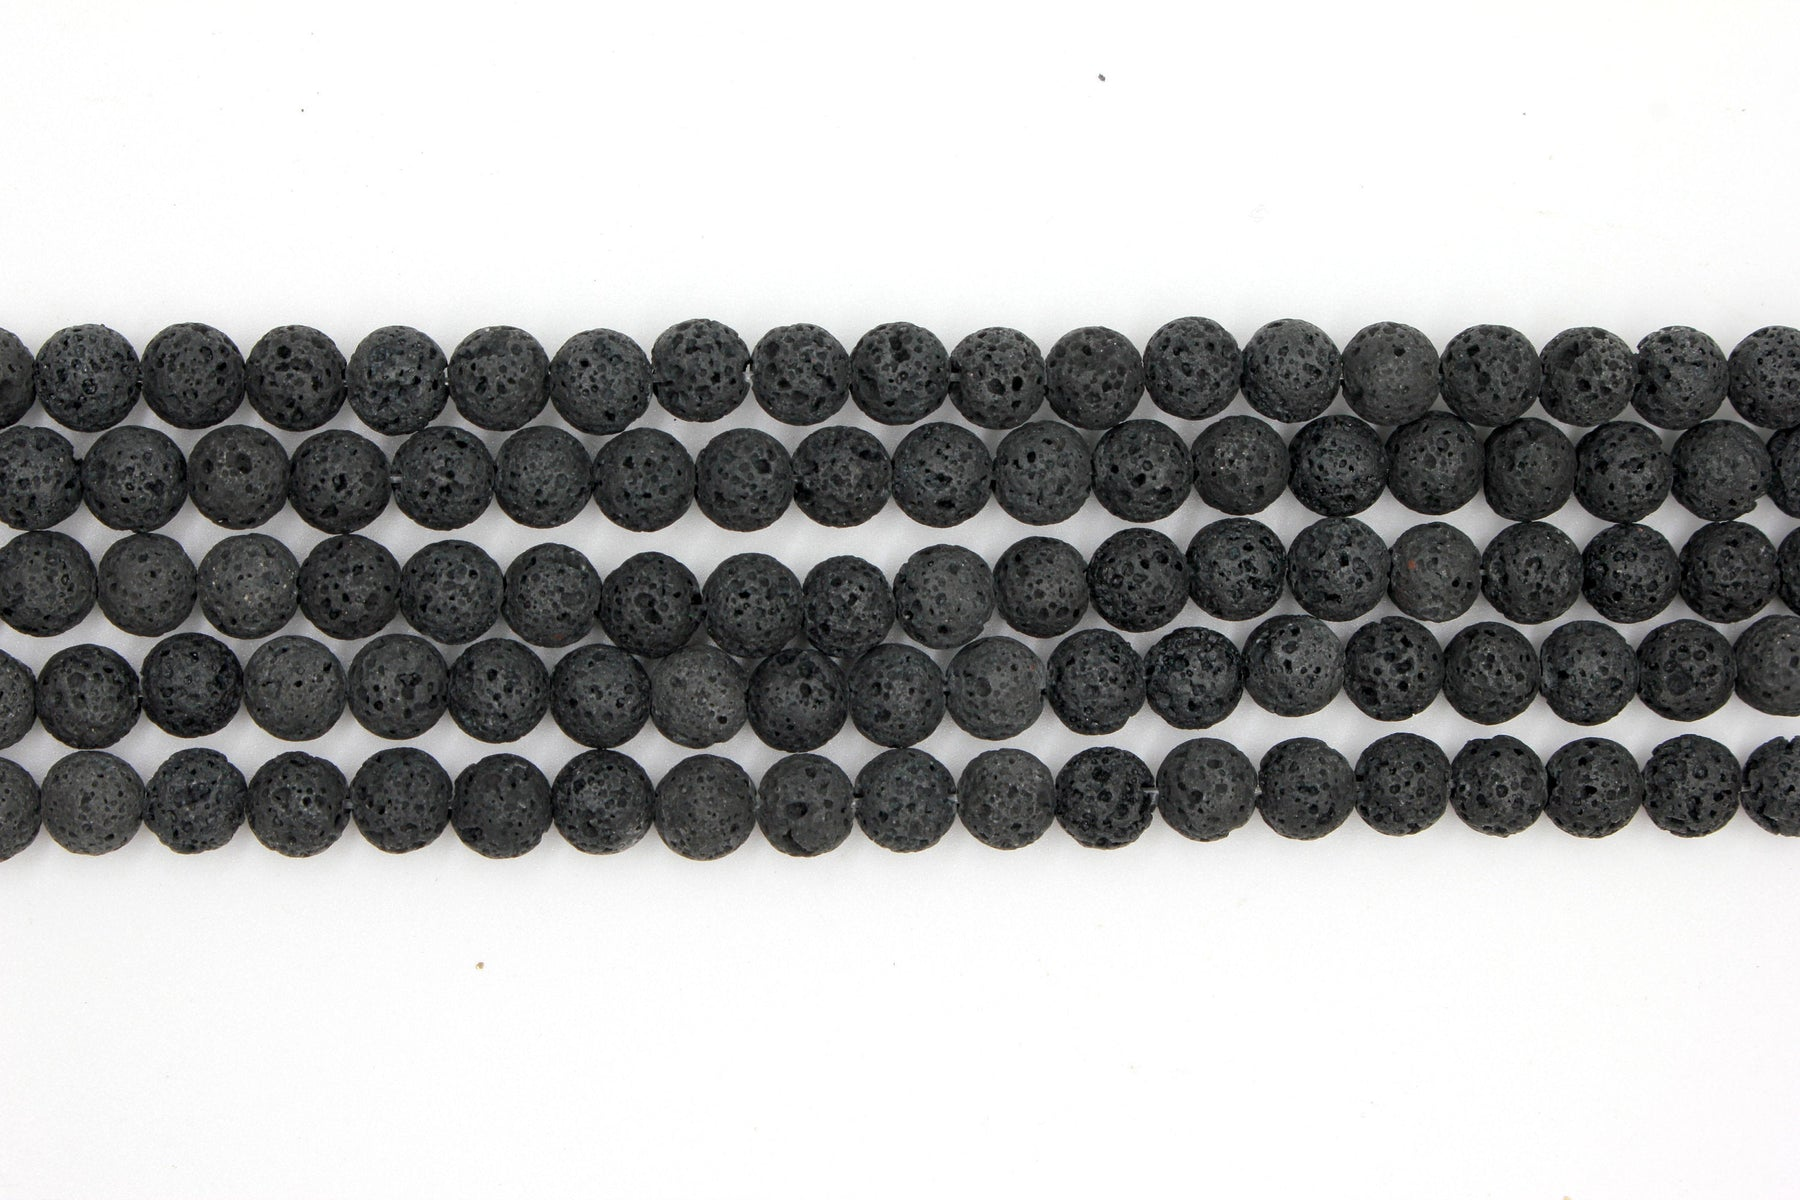 8mm unwaxed lava beads